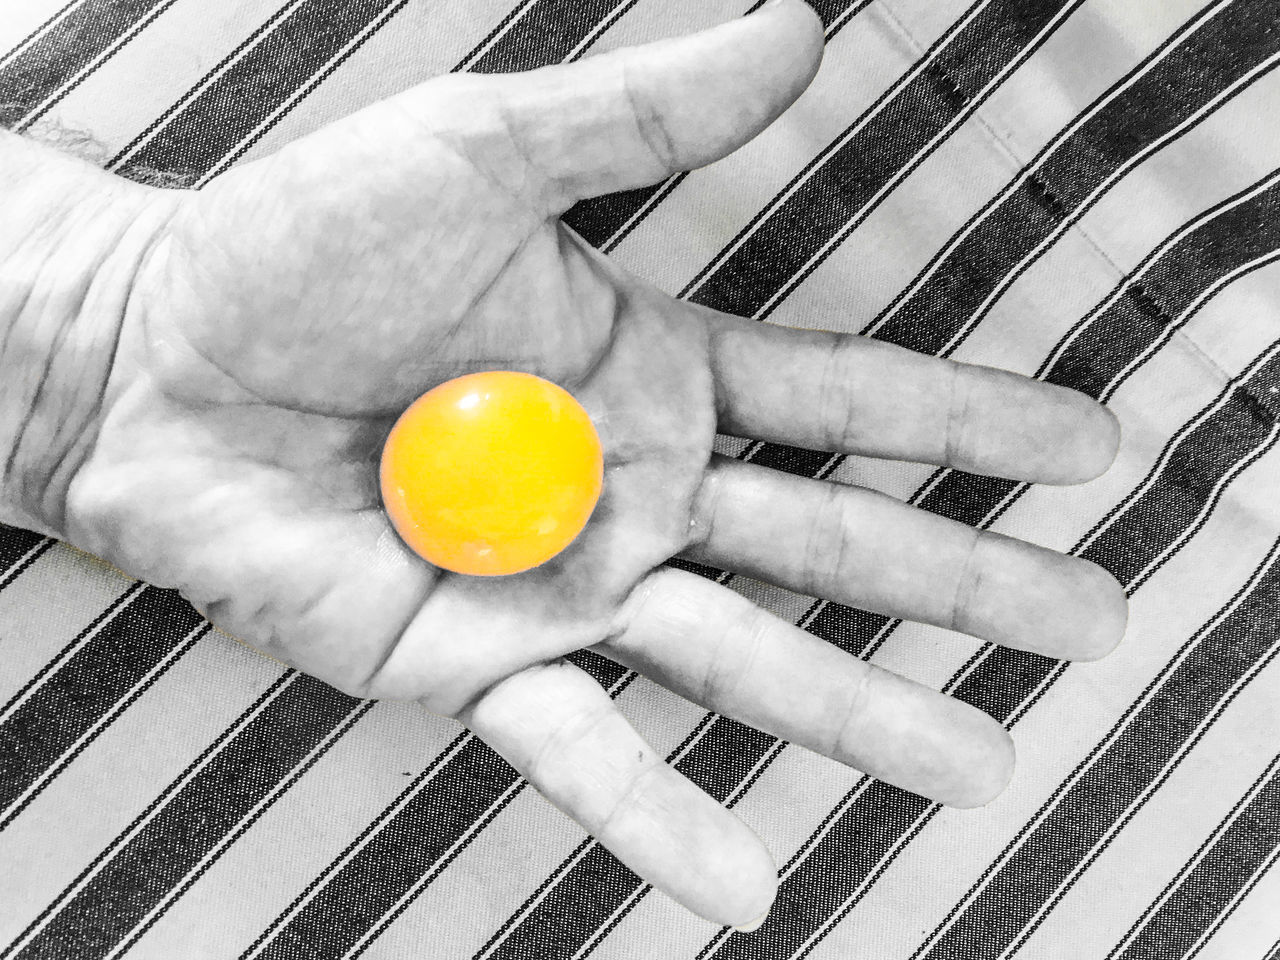 Separating eggs is a delicate task, especially when making Sauce Hollandaise Blackandwhite Caution Close-up Color Key Day Delicate Egg Yolk Food Fragile Hand Holding Human Body Part Human Hand Indoors  Striped View From Above Yellow Yolk